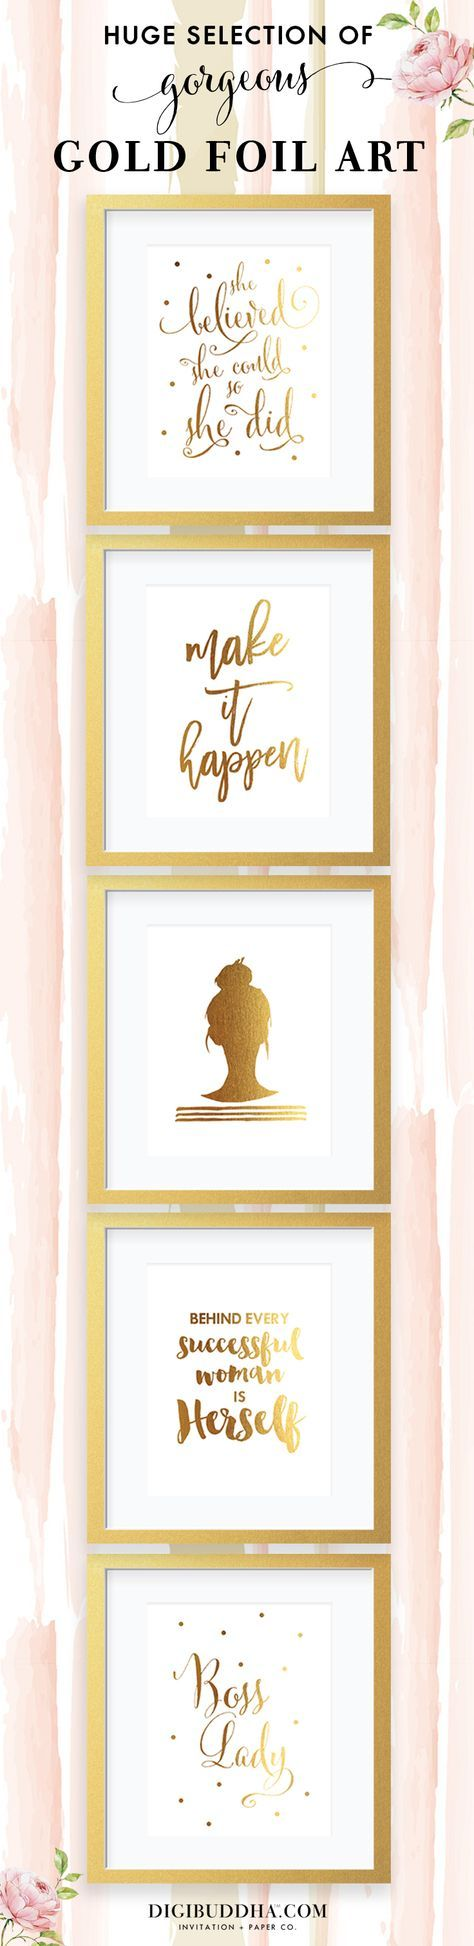 Chic gold foil art prints in tons of gorgeous designs.